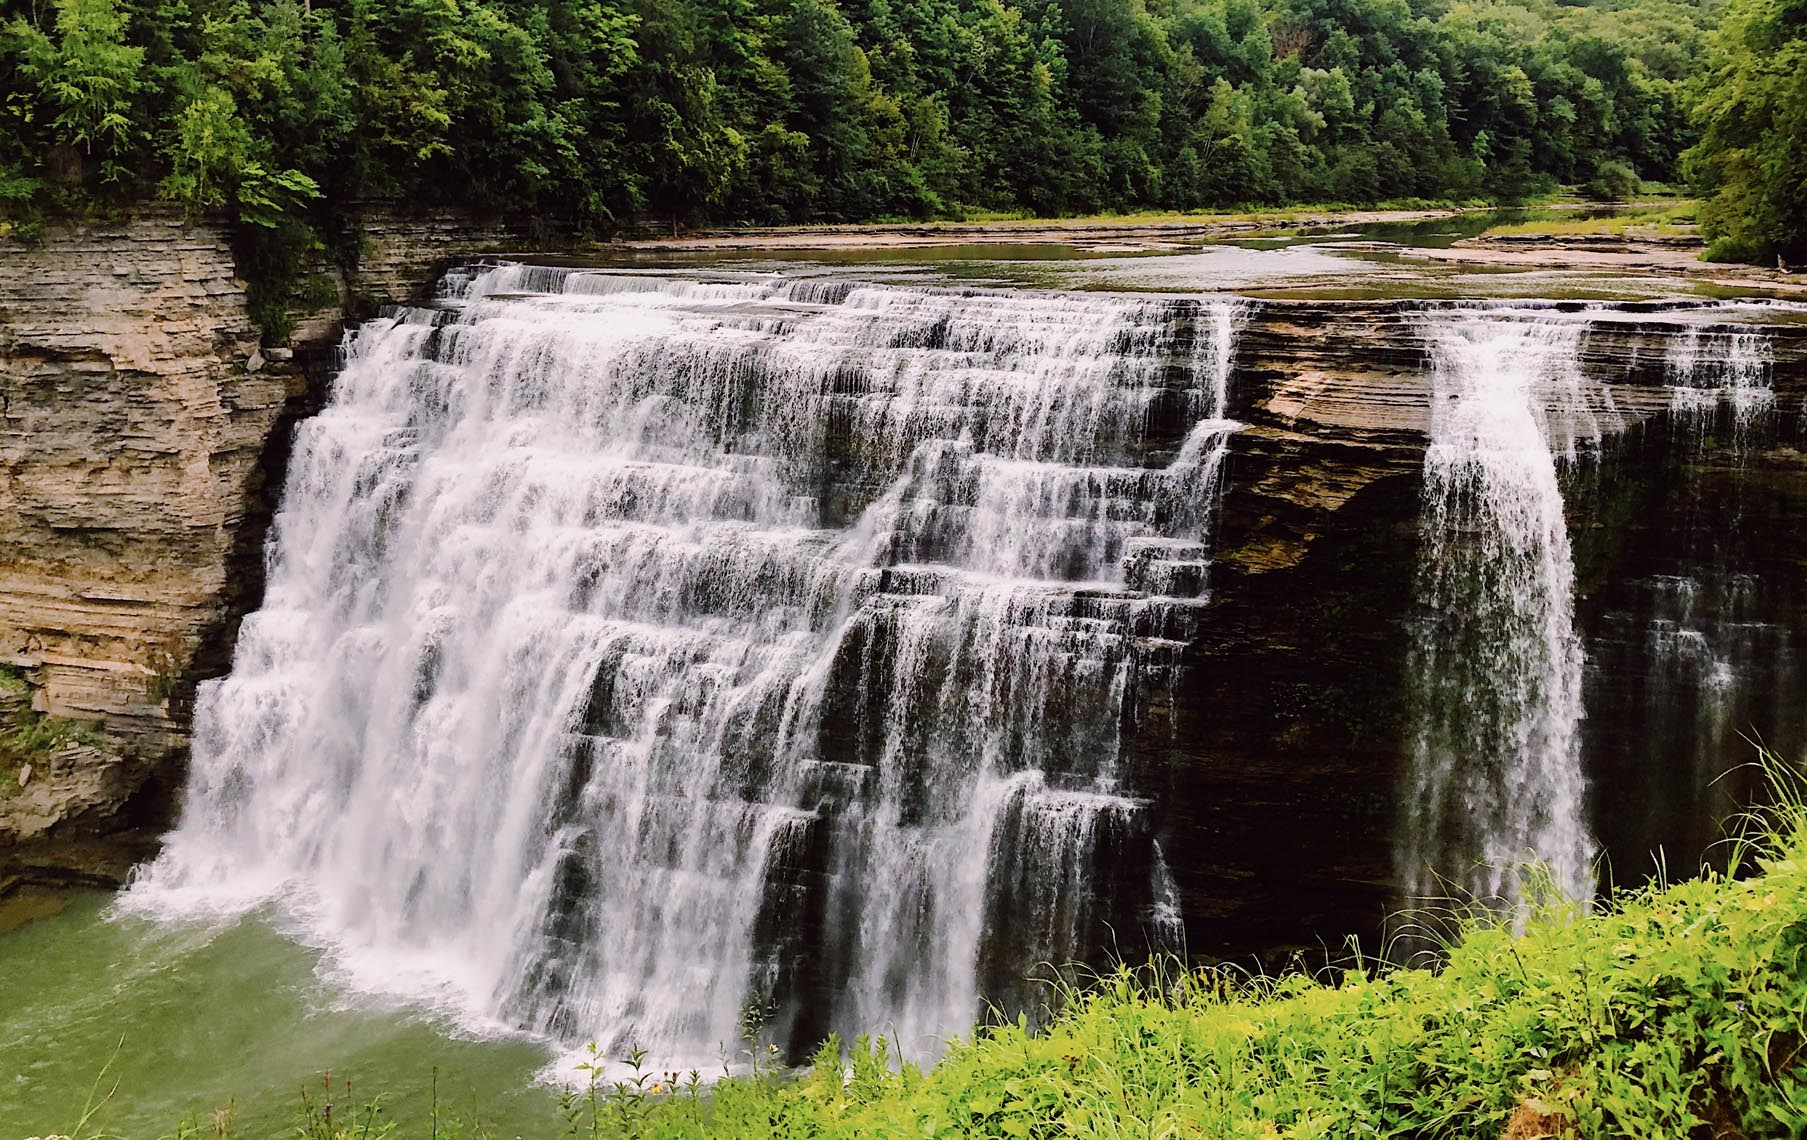 My Top 5 Best Spots on the Road: Road Trip in Upstate NY